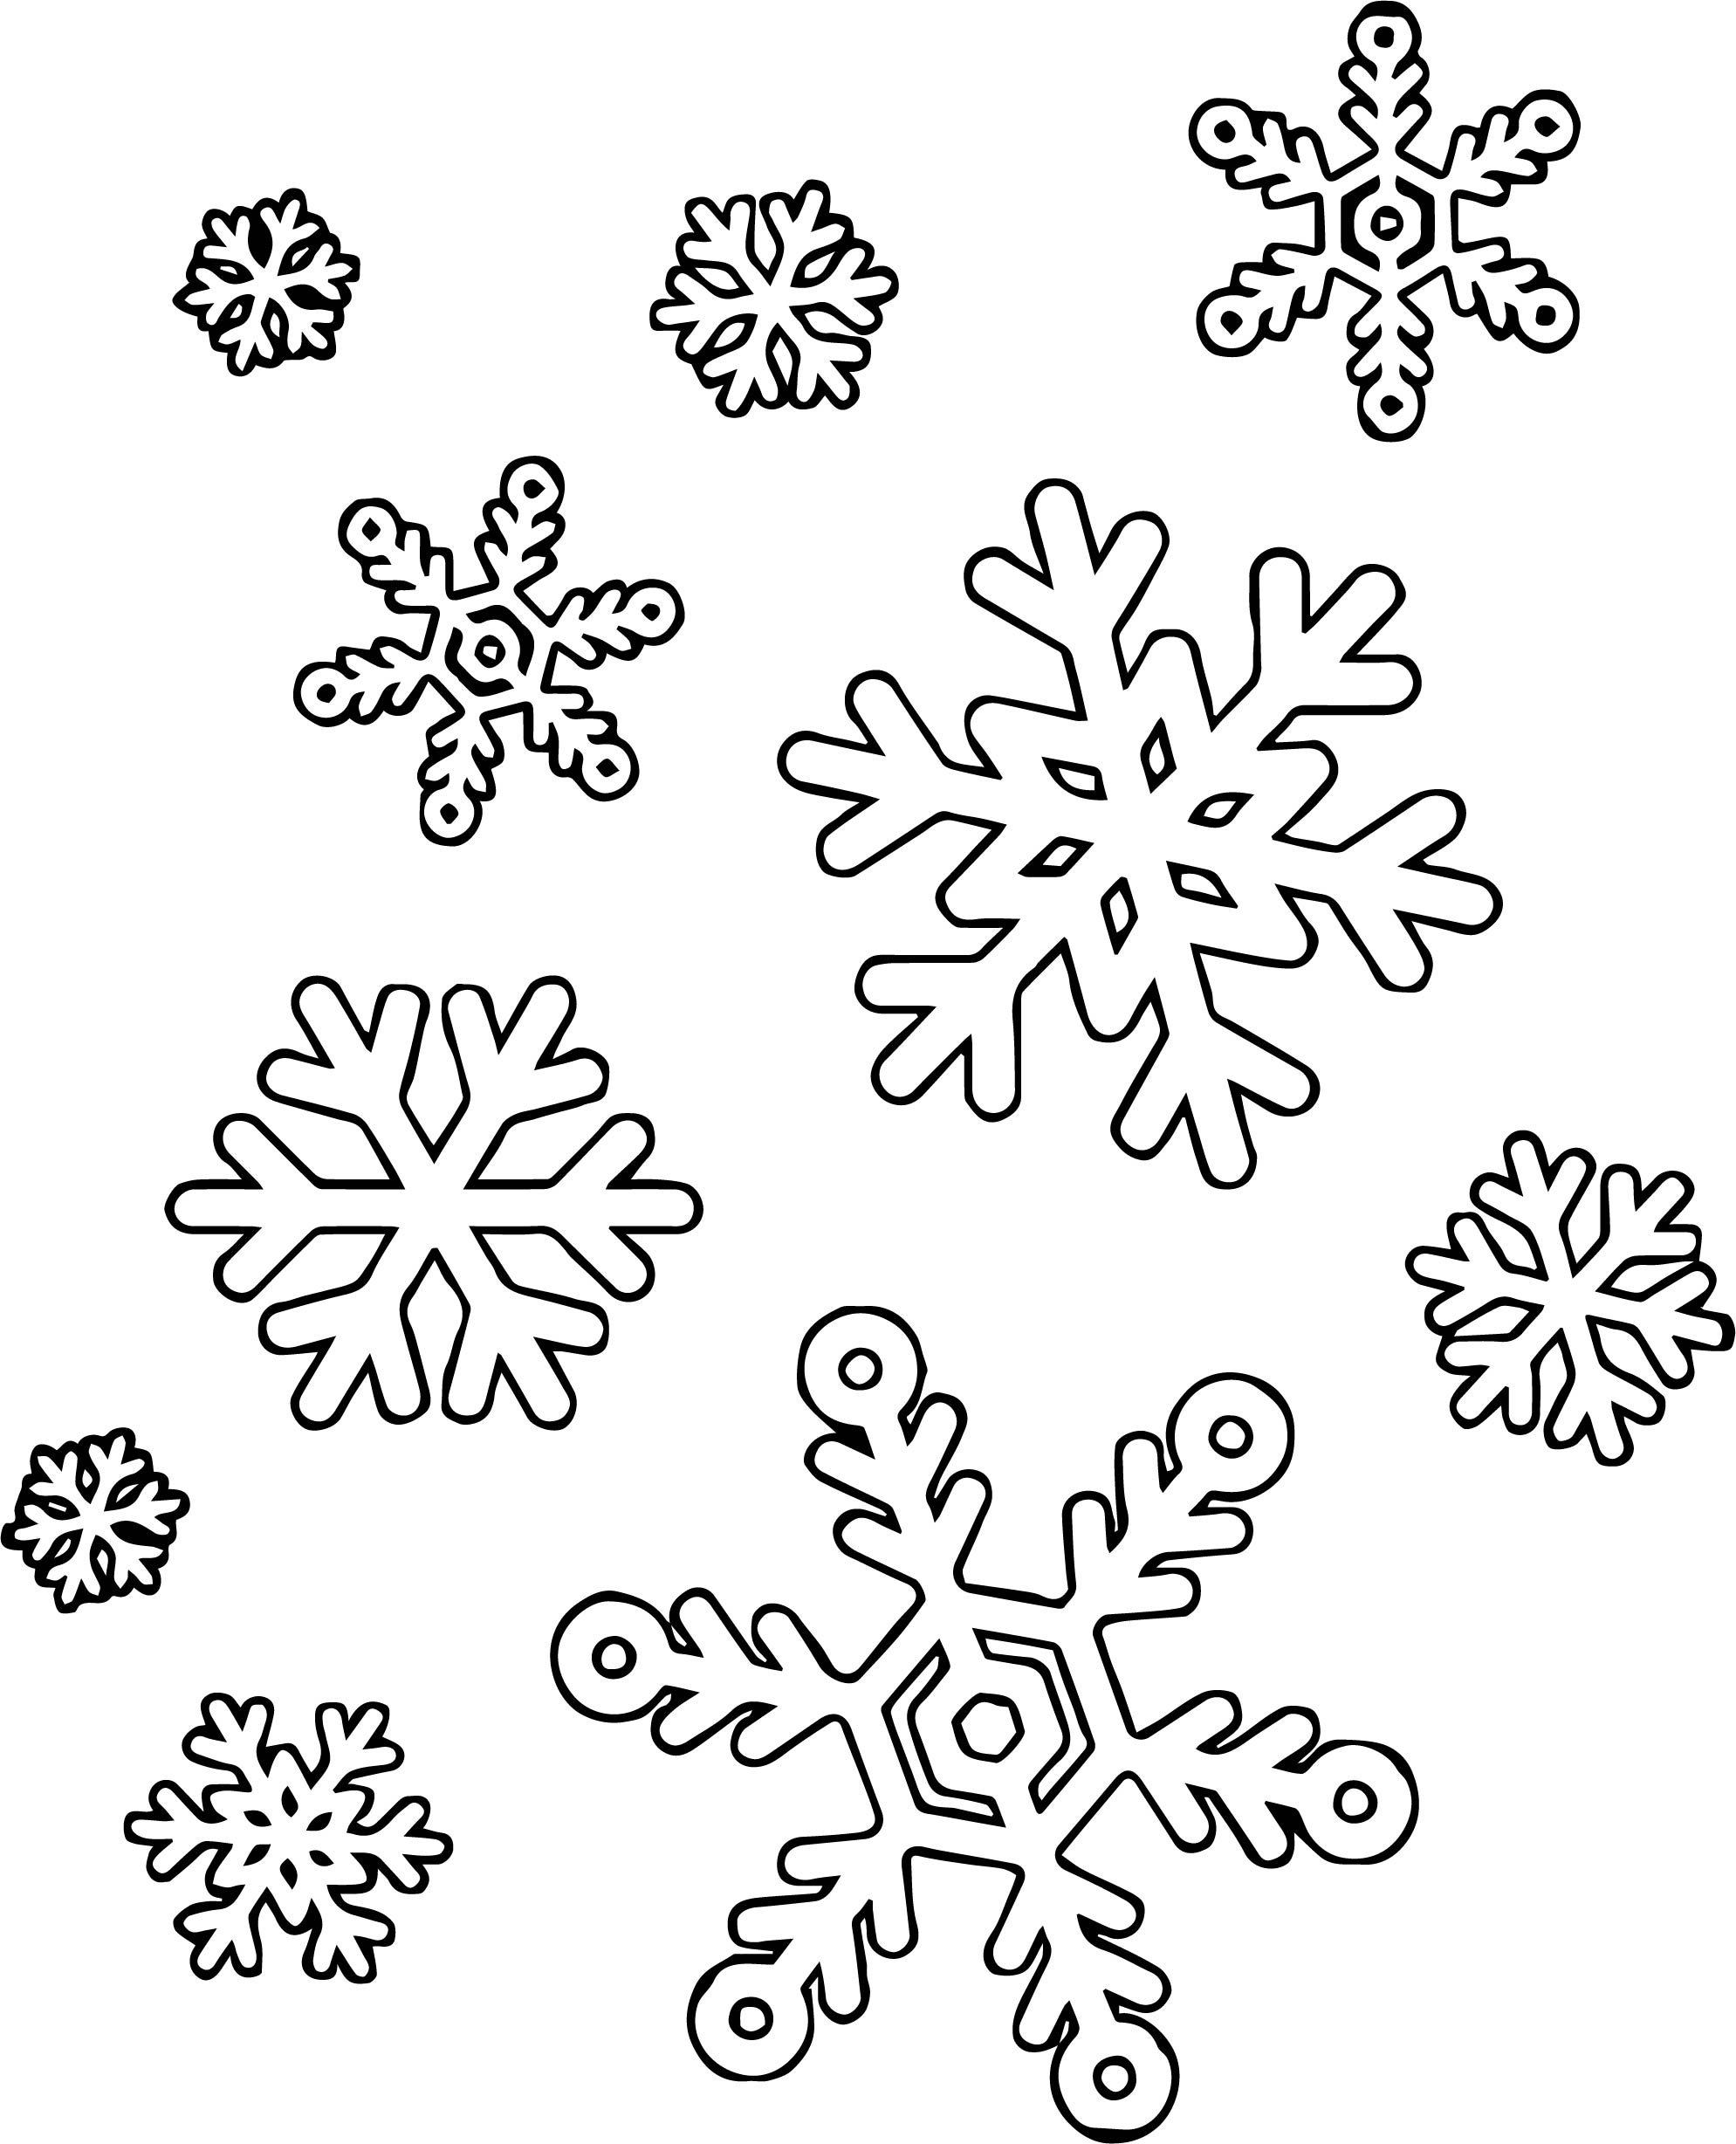 Much Snowflake Coloring Page   Wecoloringpage.com